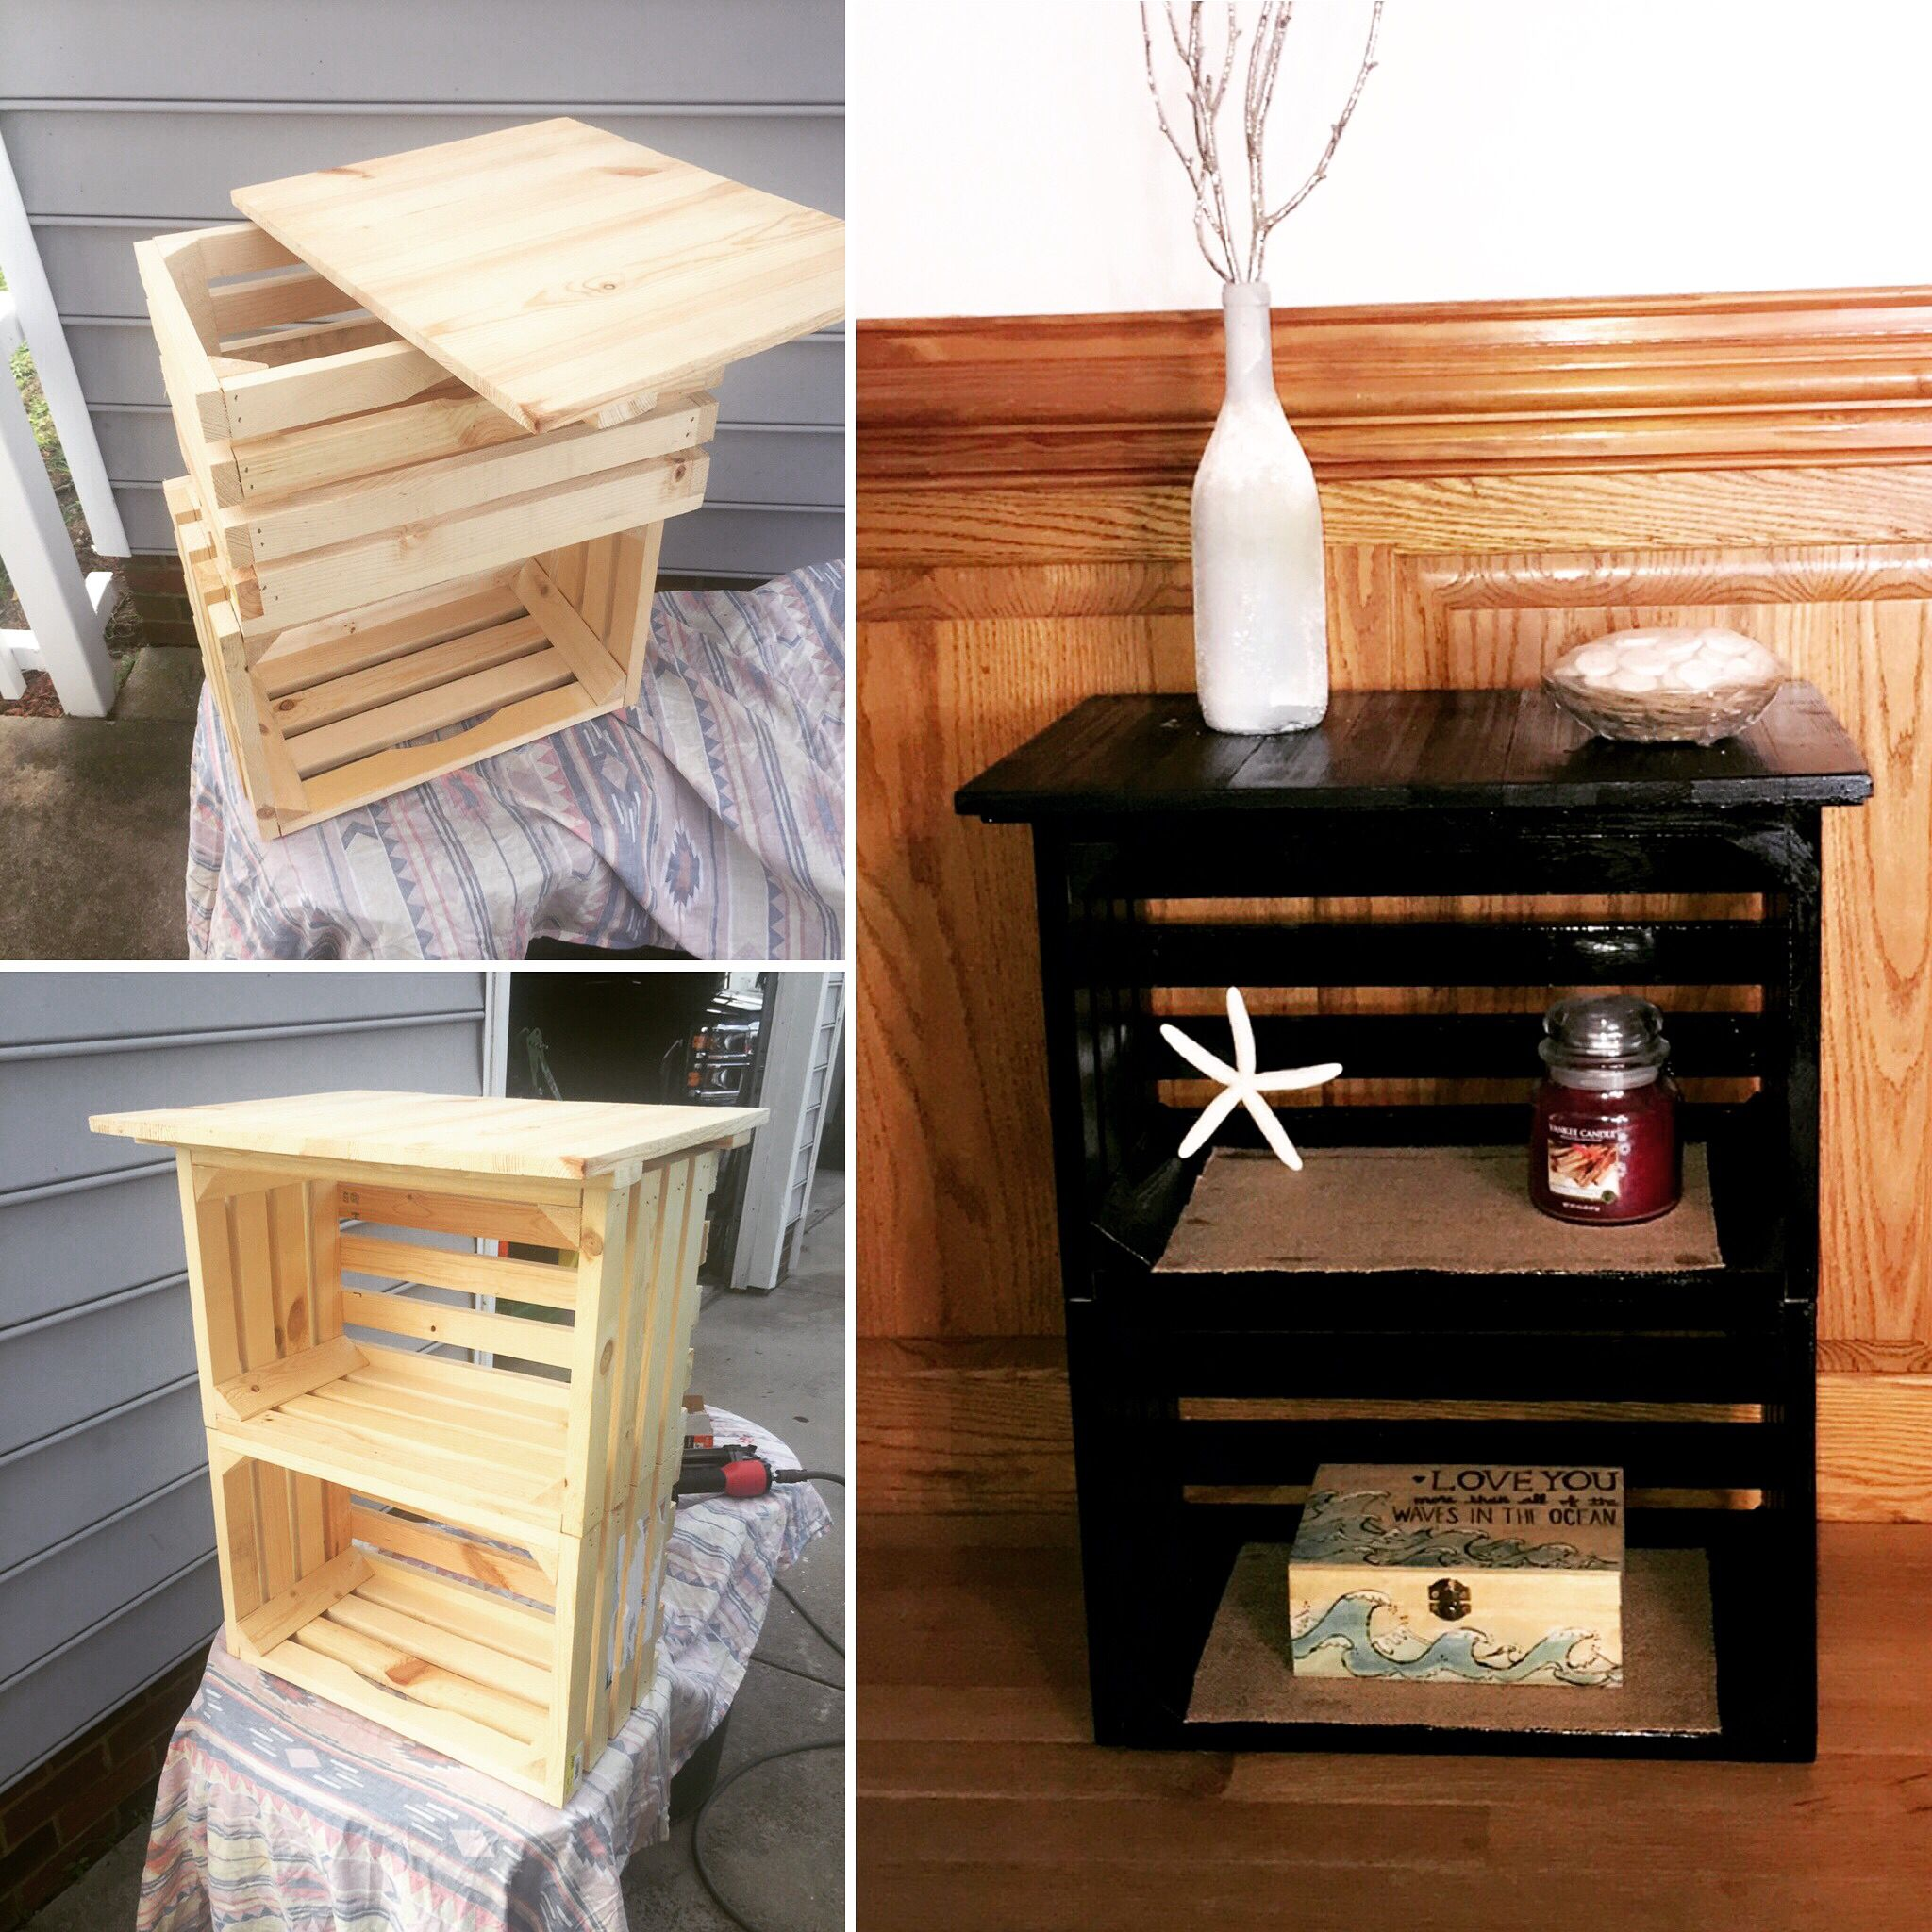 Diy crate nightstand 30 pallet craft ideas pinterest for Nightstand ideas